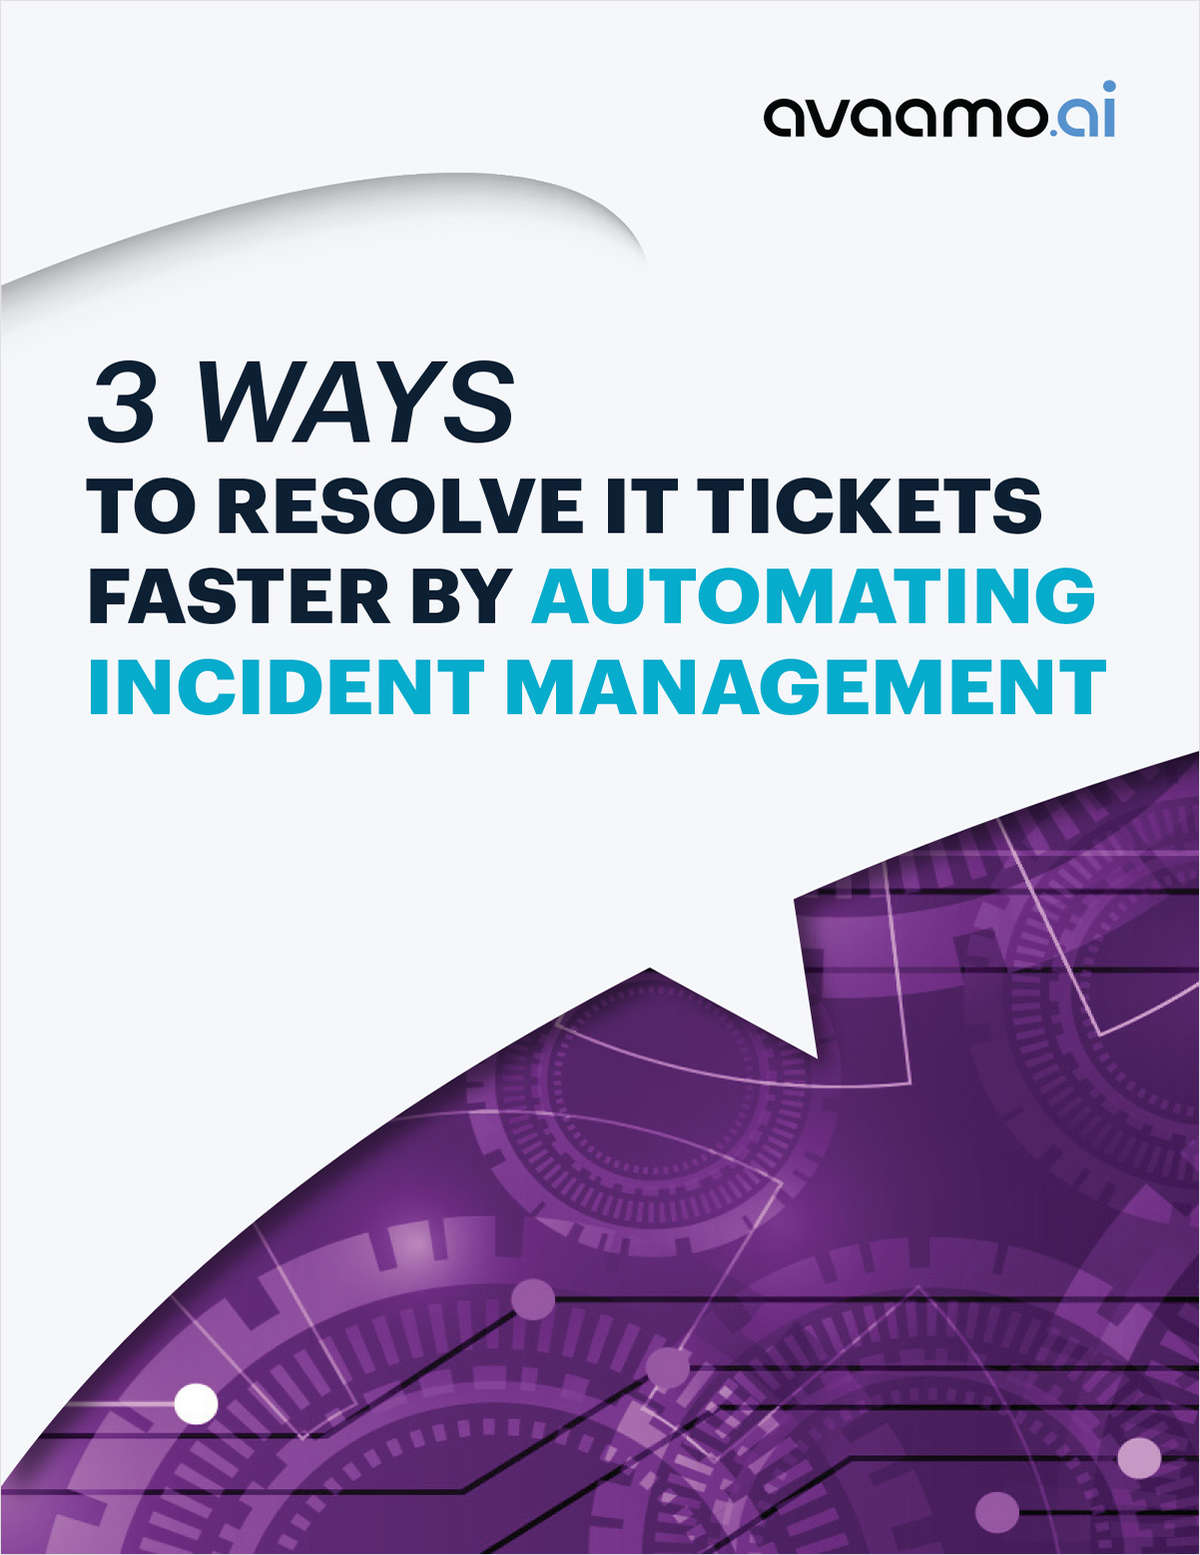 3 Ways to Resolve IT Tickets Faster by Automating Incident Management